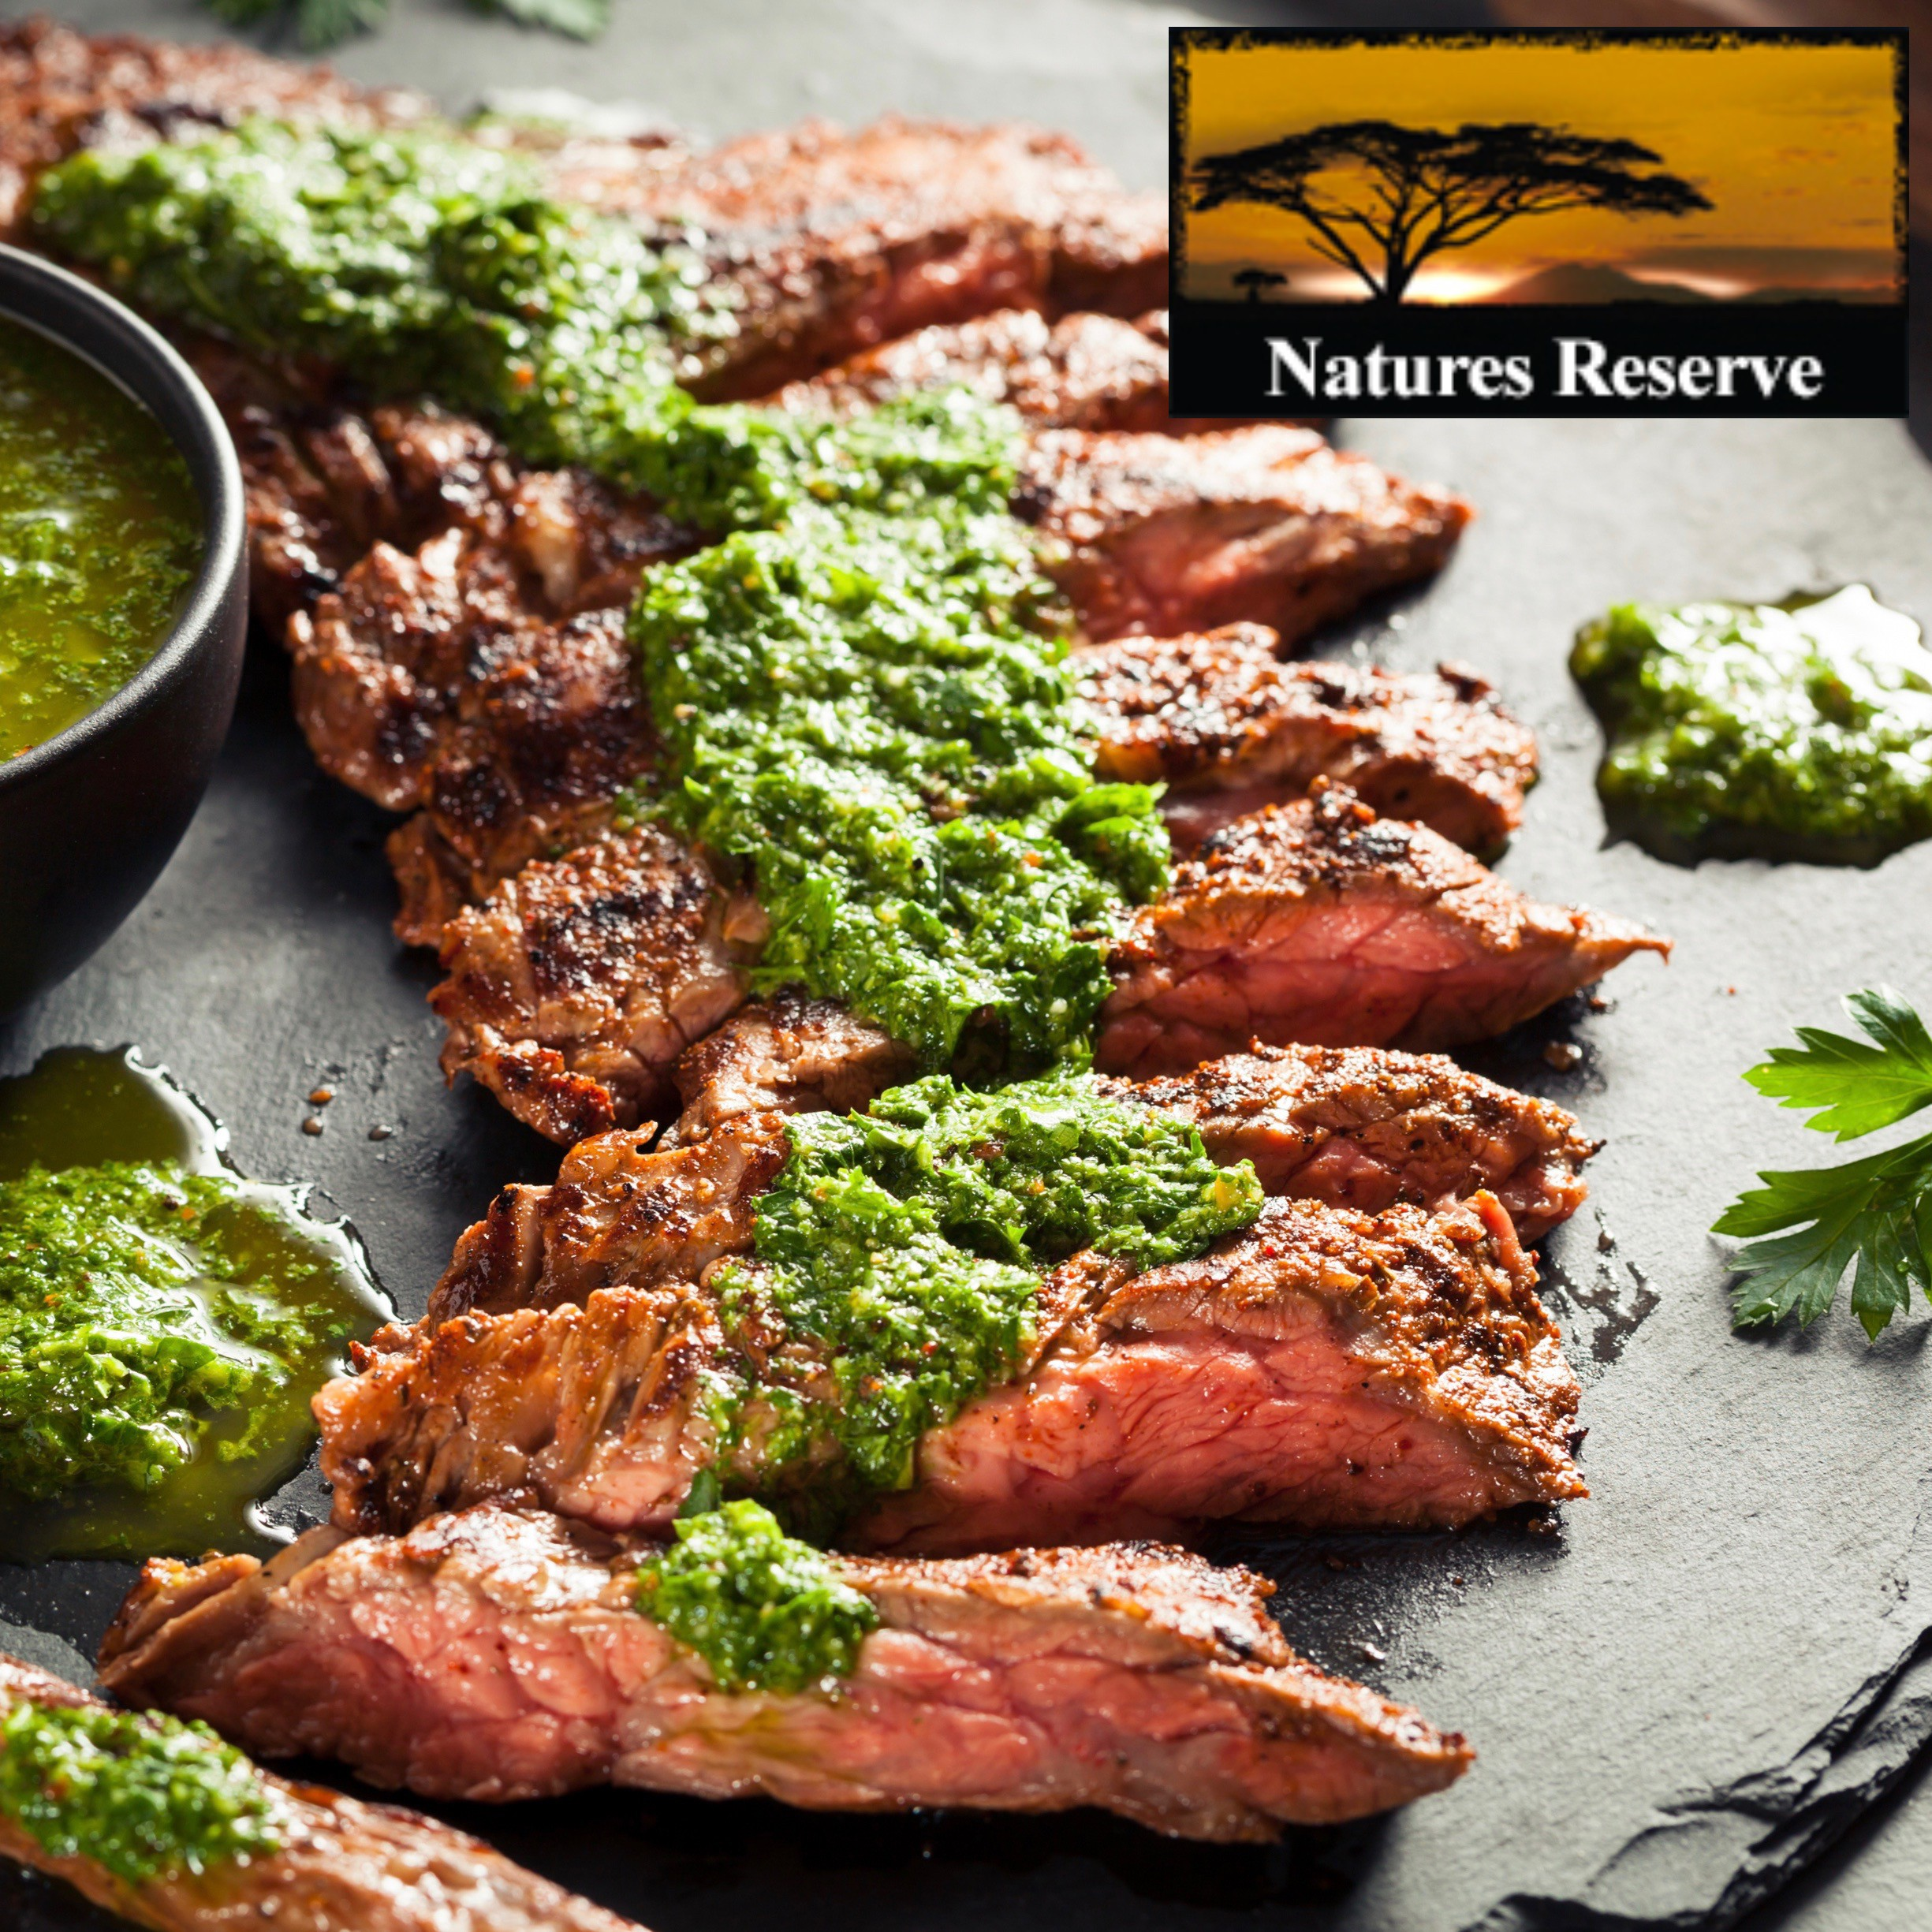 Flap Meat Deal. Natures Reserve. Ca. 8.4 kg